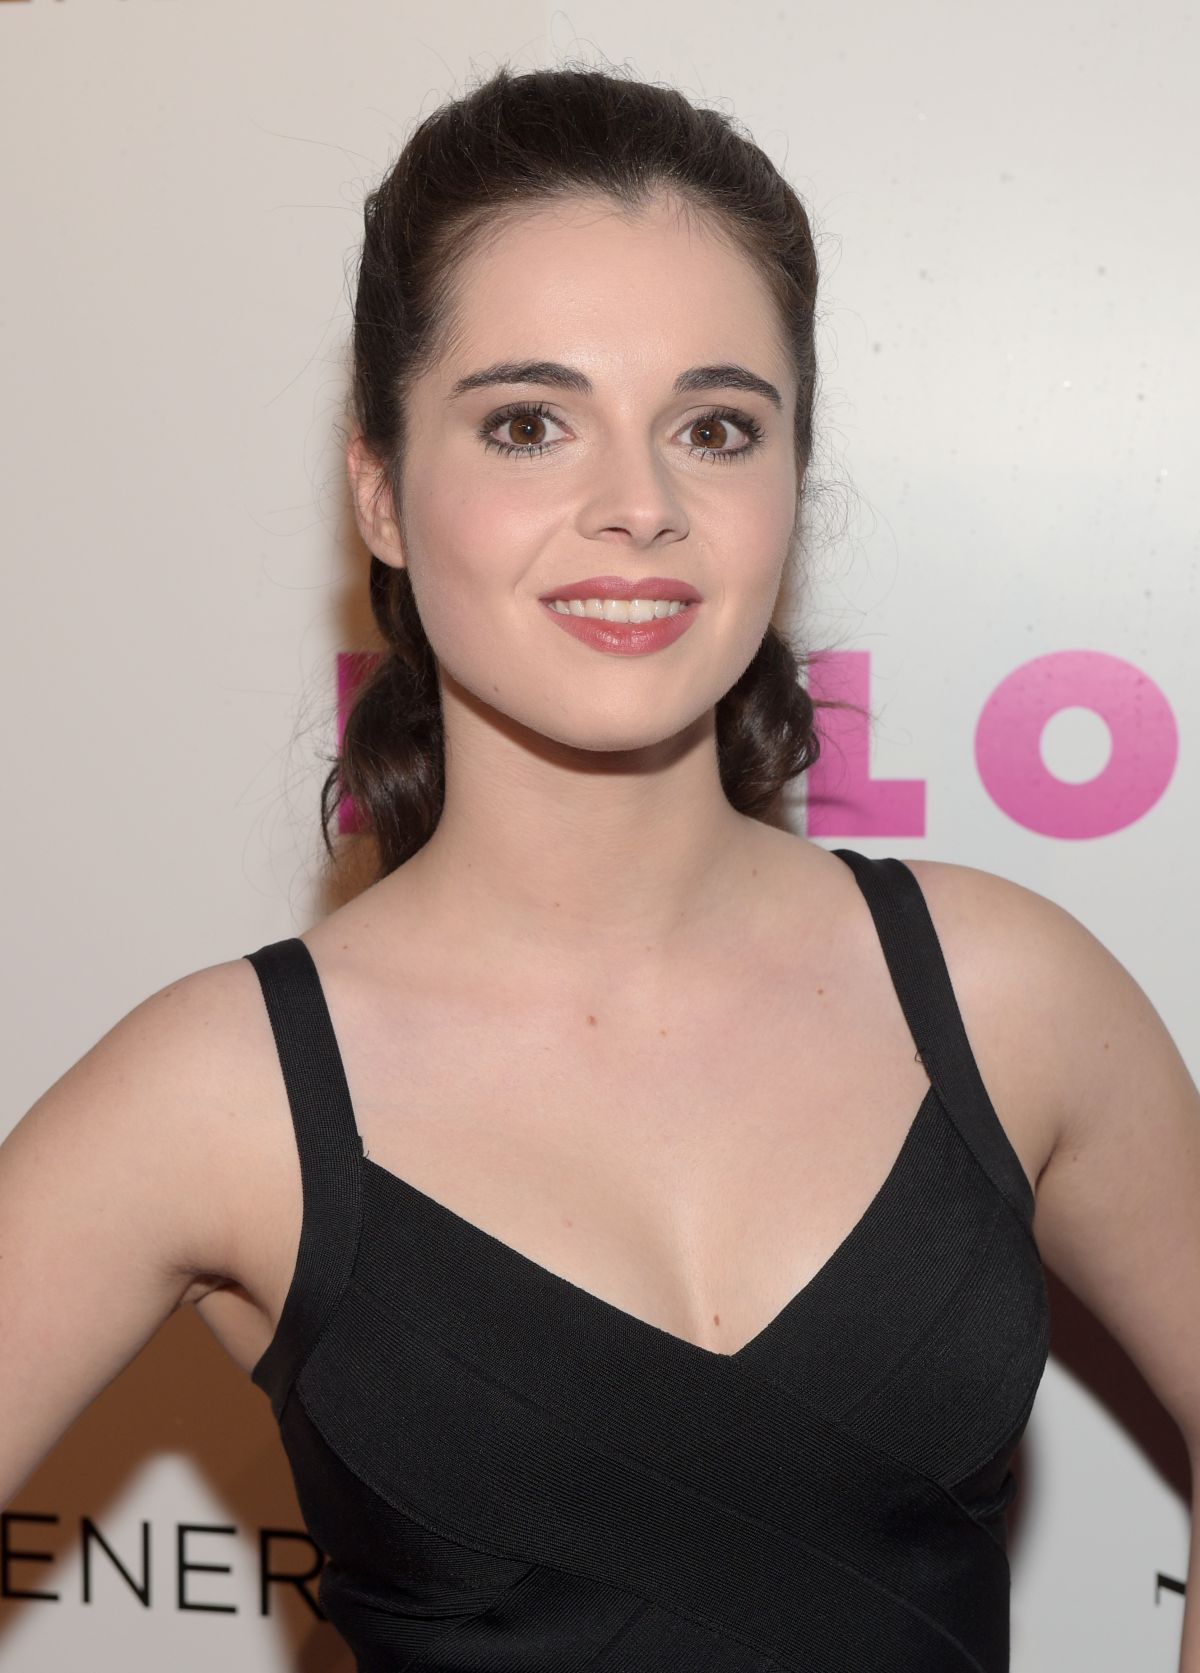 vanessa marano and laura marano interview